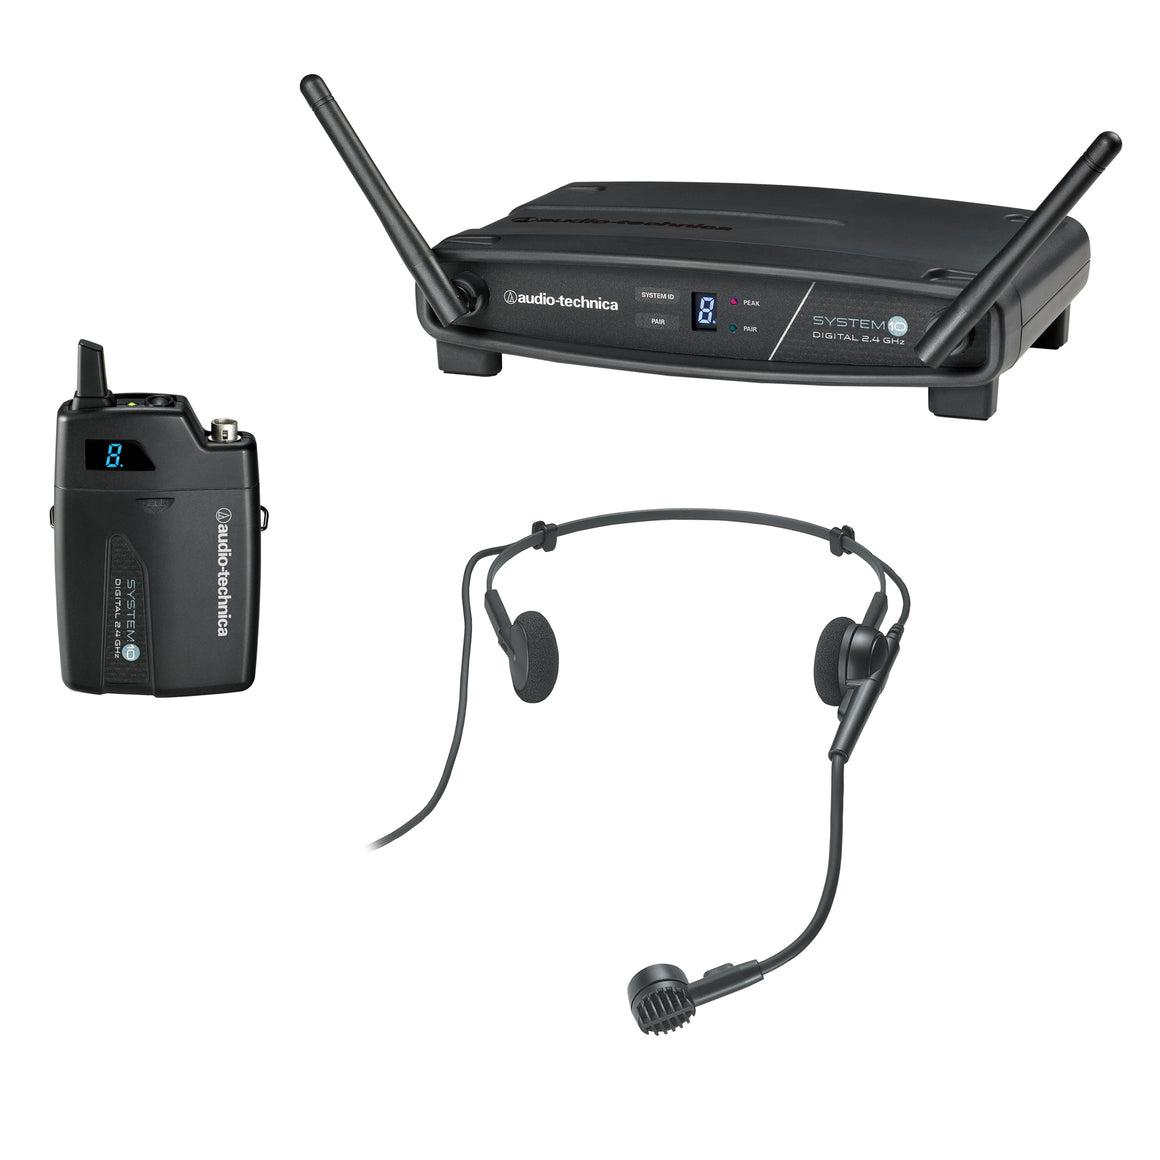 AUDIO TECHNICA ATW1101H System 10 Wireless Headworn Mic/Receiver